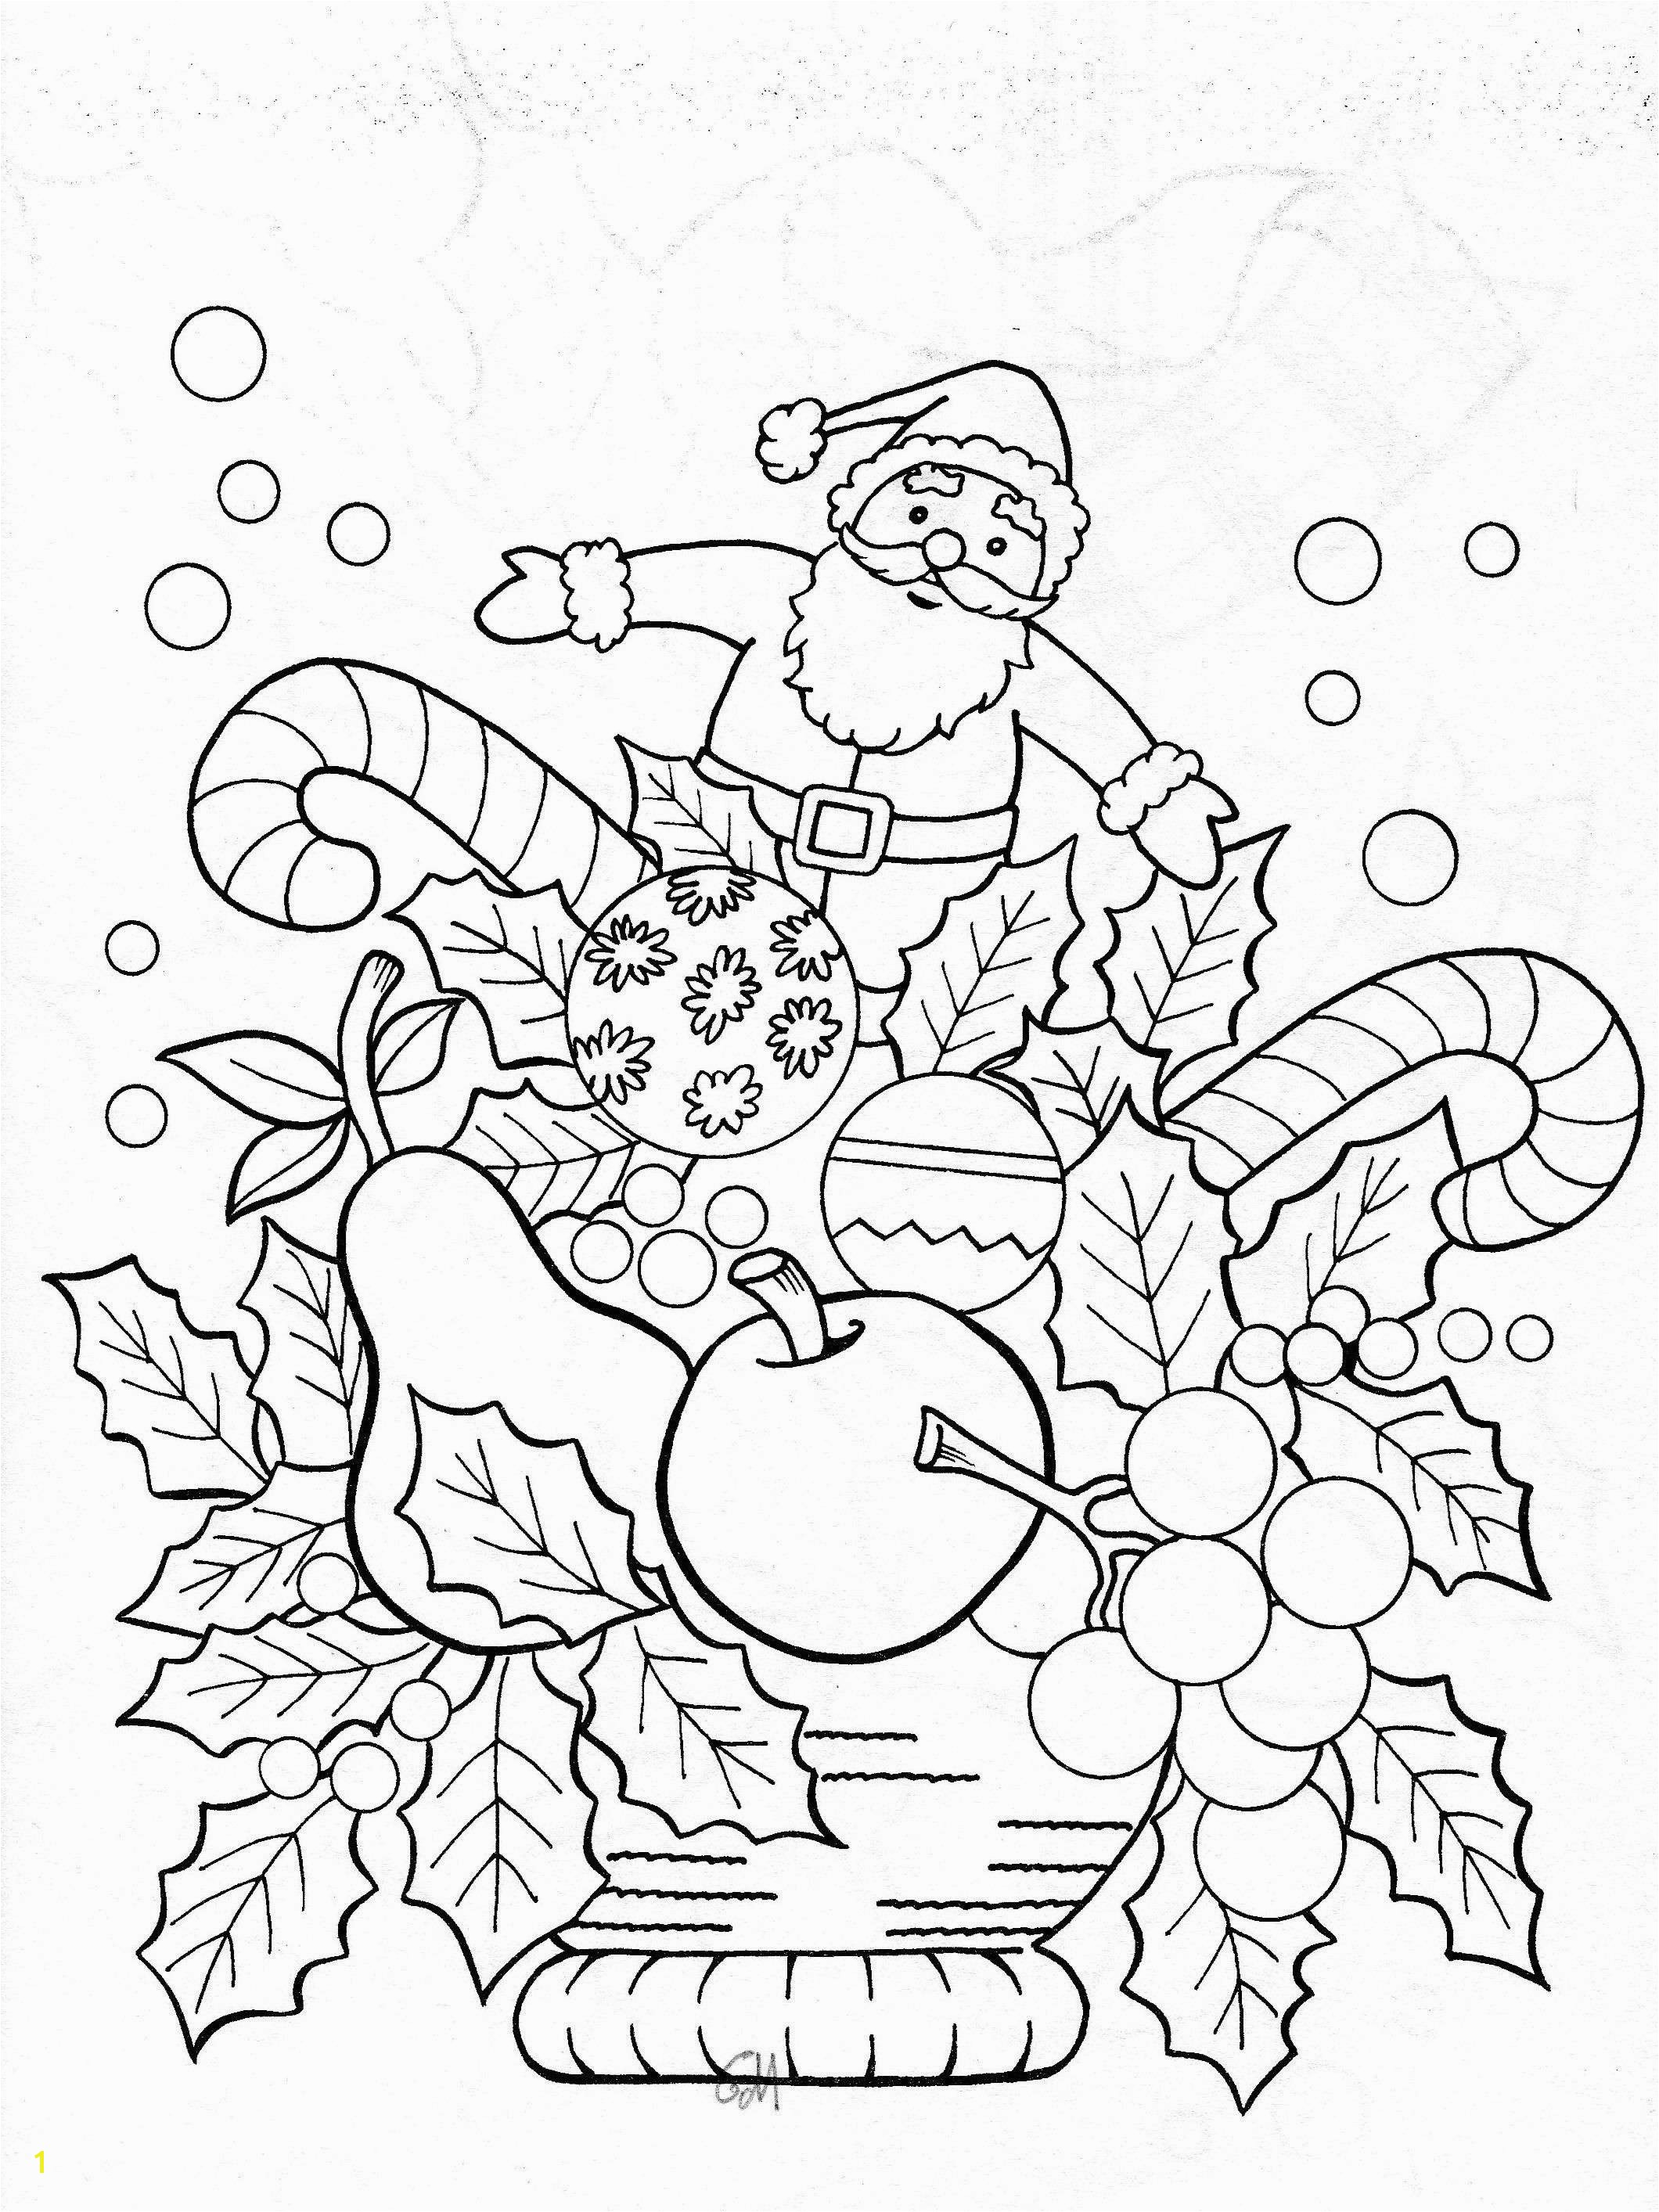 Religious Christmas Coloring Pages Jesus 49 Unique Free Printable Bible Coloring Pages